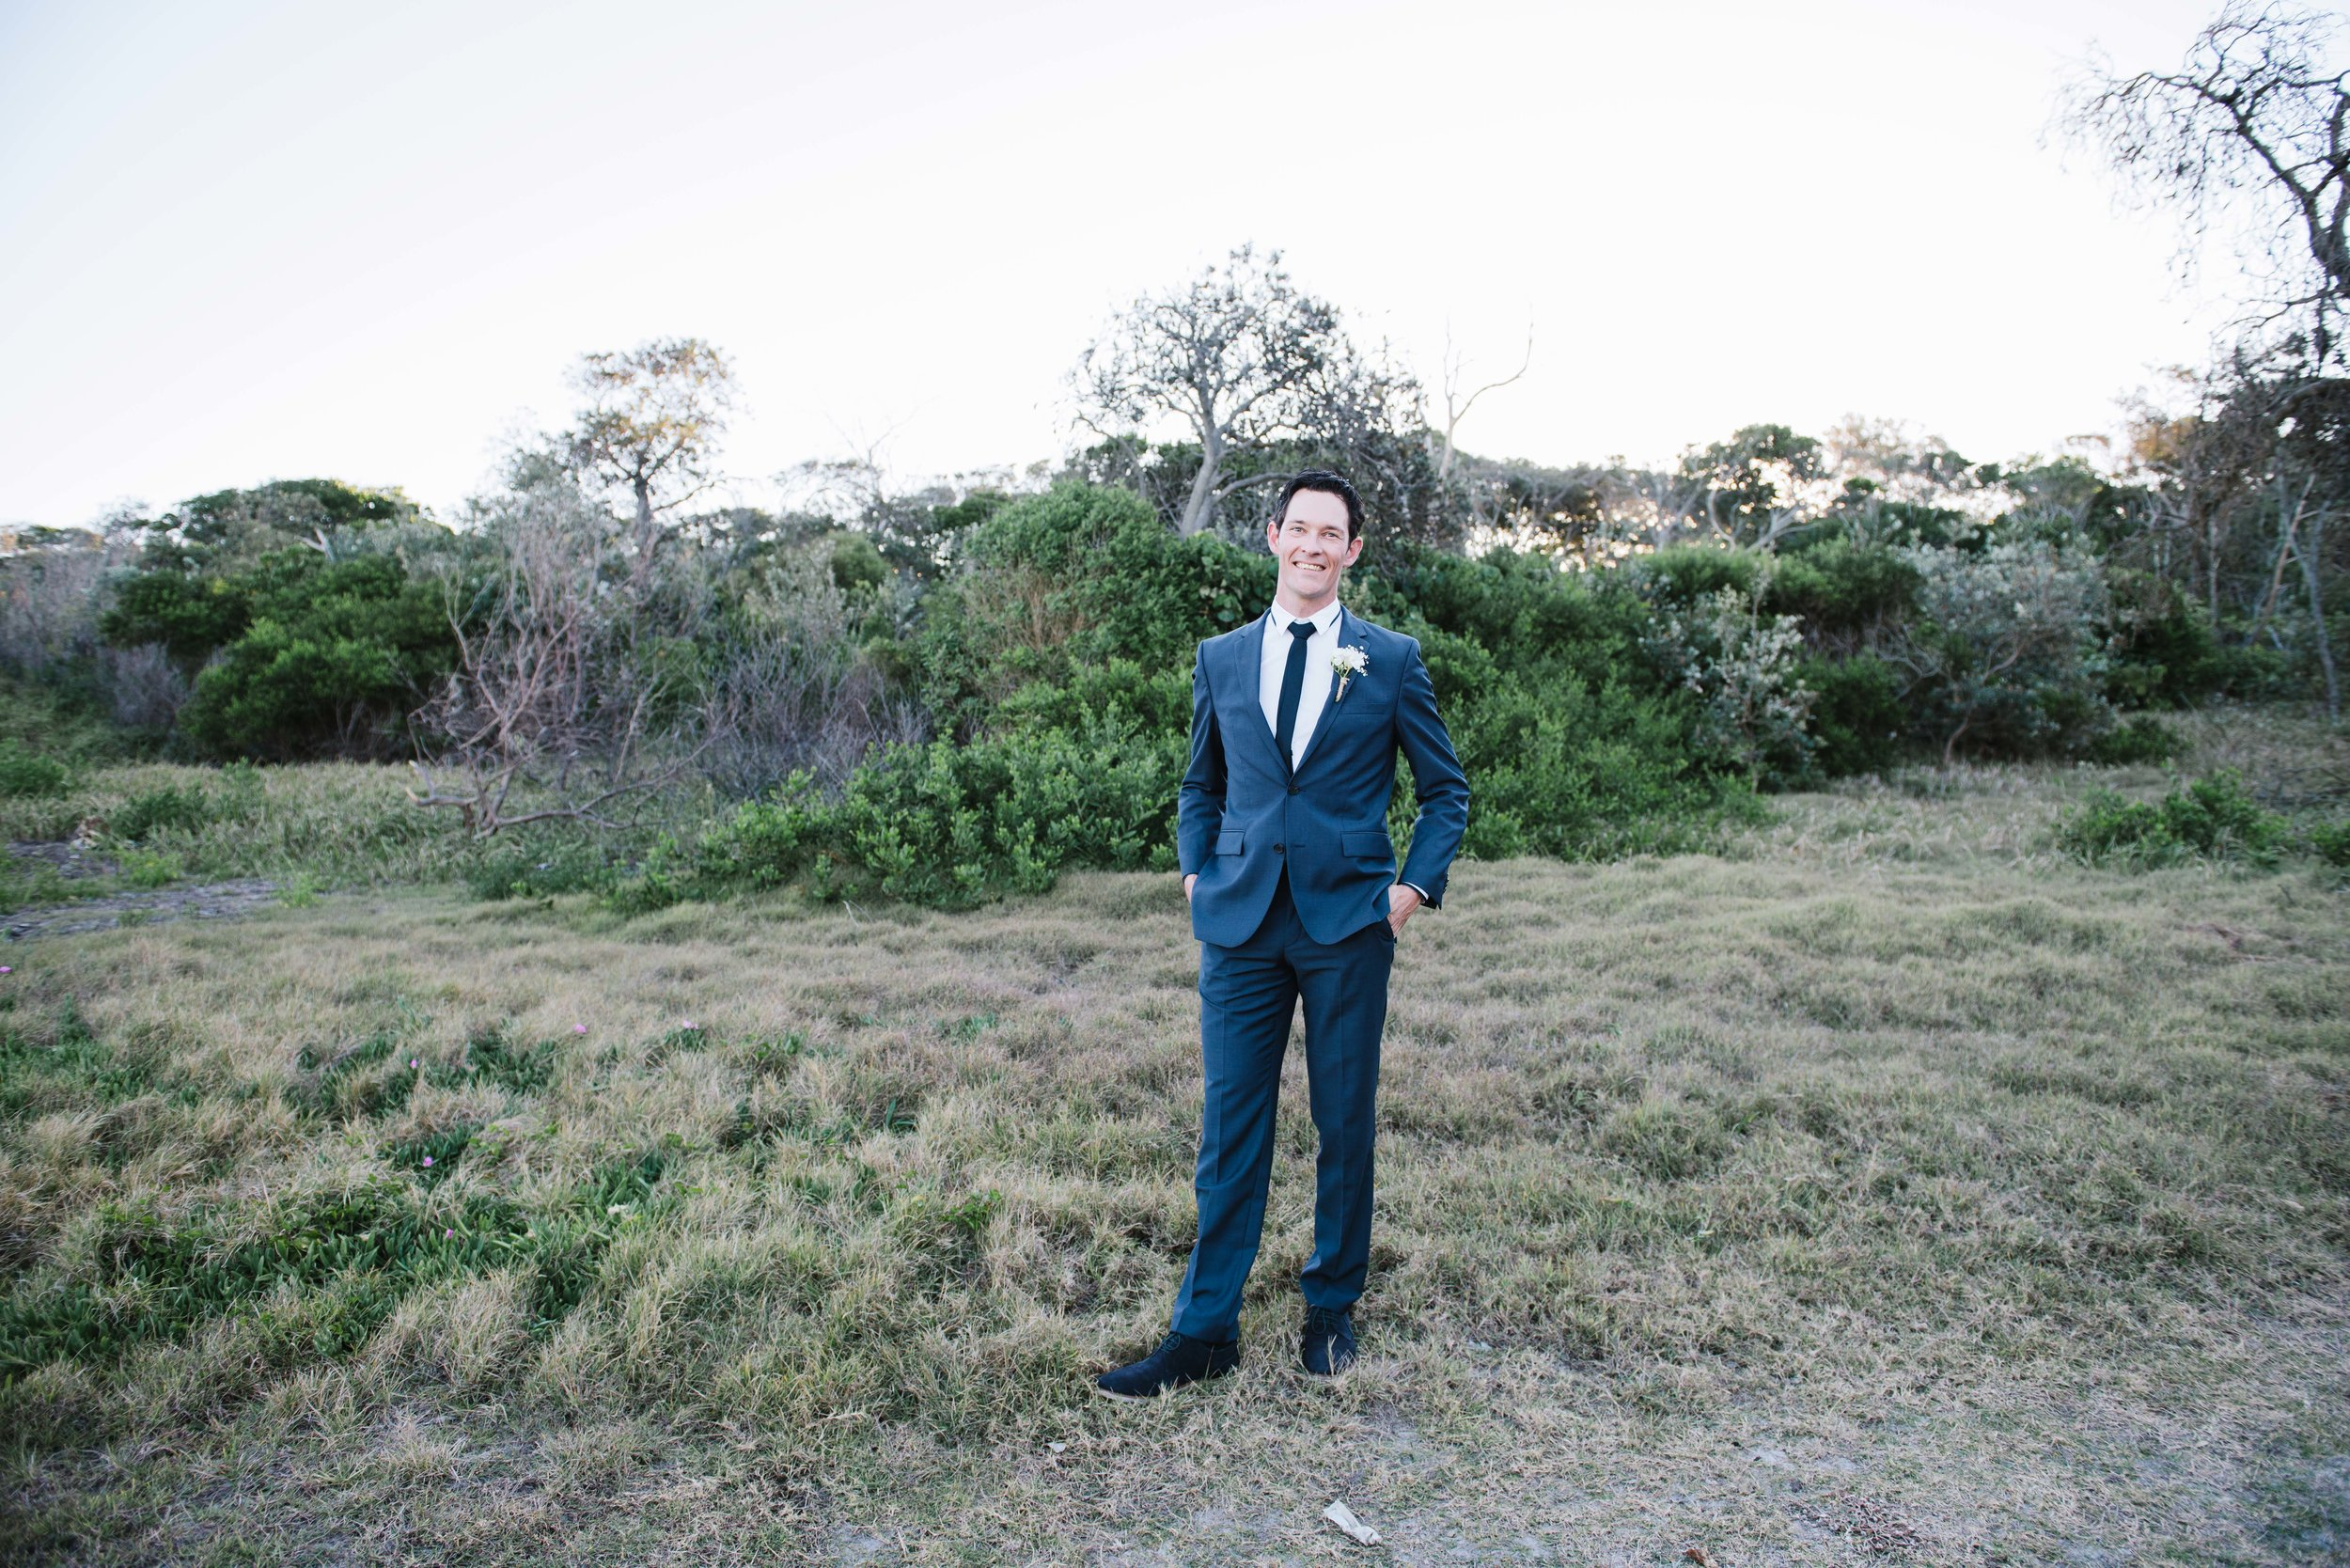 Am and Sam- skyla sage photography weddings, families, byron bay,tweed coast,kingscliff,cabarita,gold coast-457.jpg